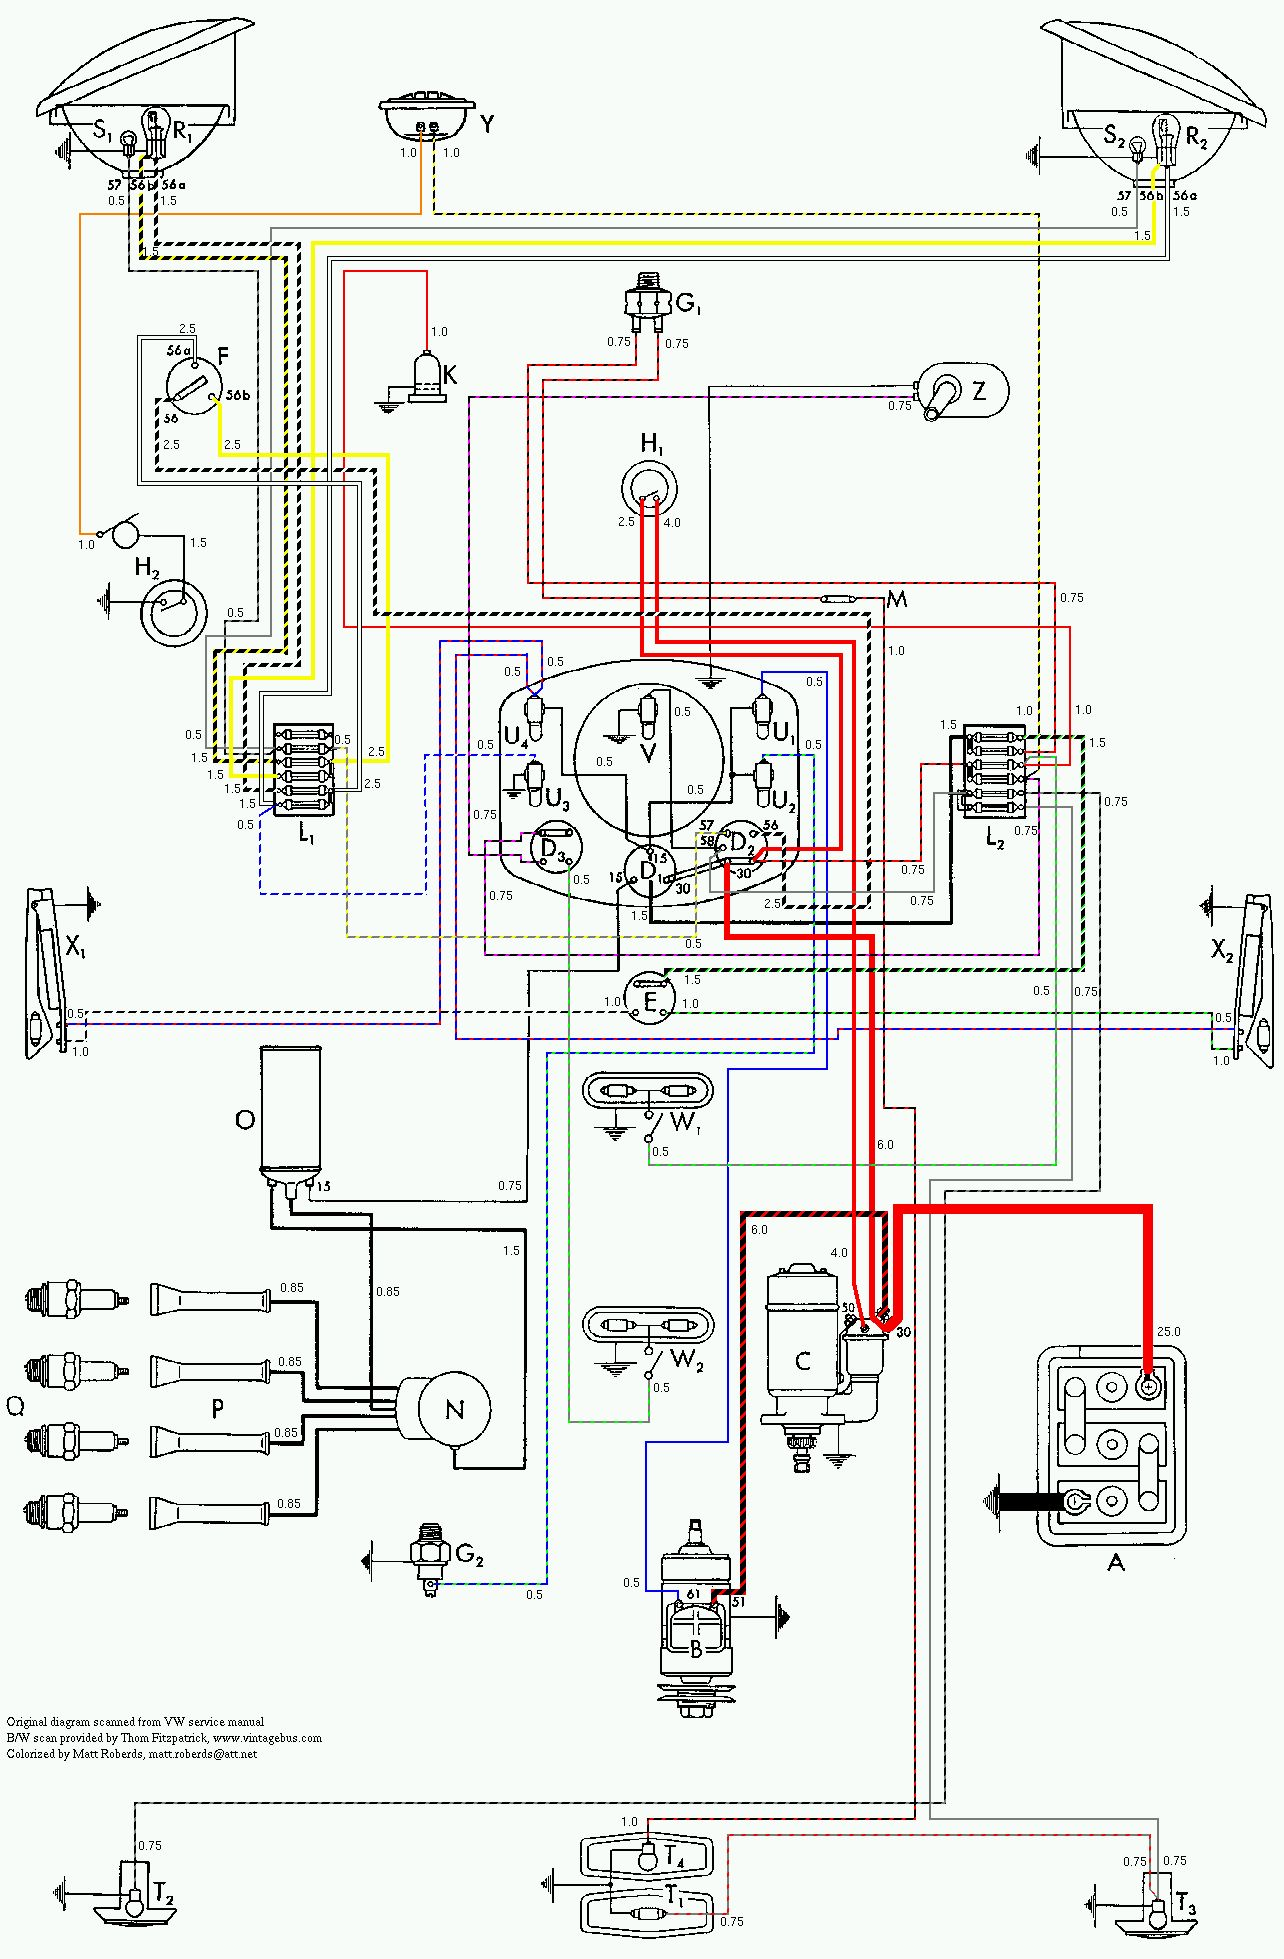 Vw Bus And Other Wiring Diagrams Traffic Light Diagram In Addition Flasher Relay Circuit